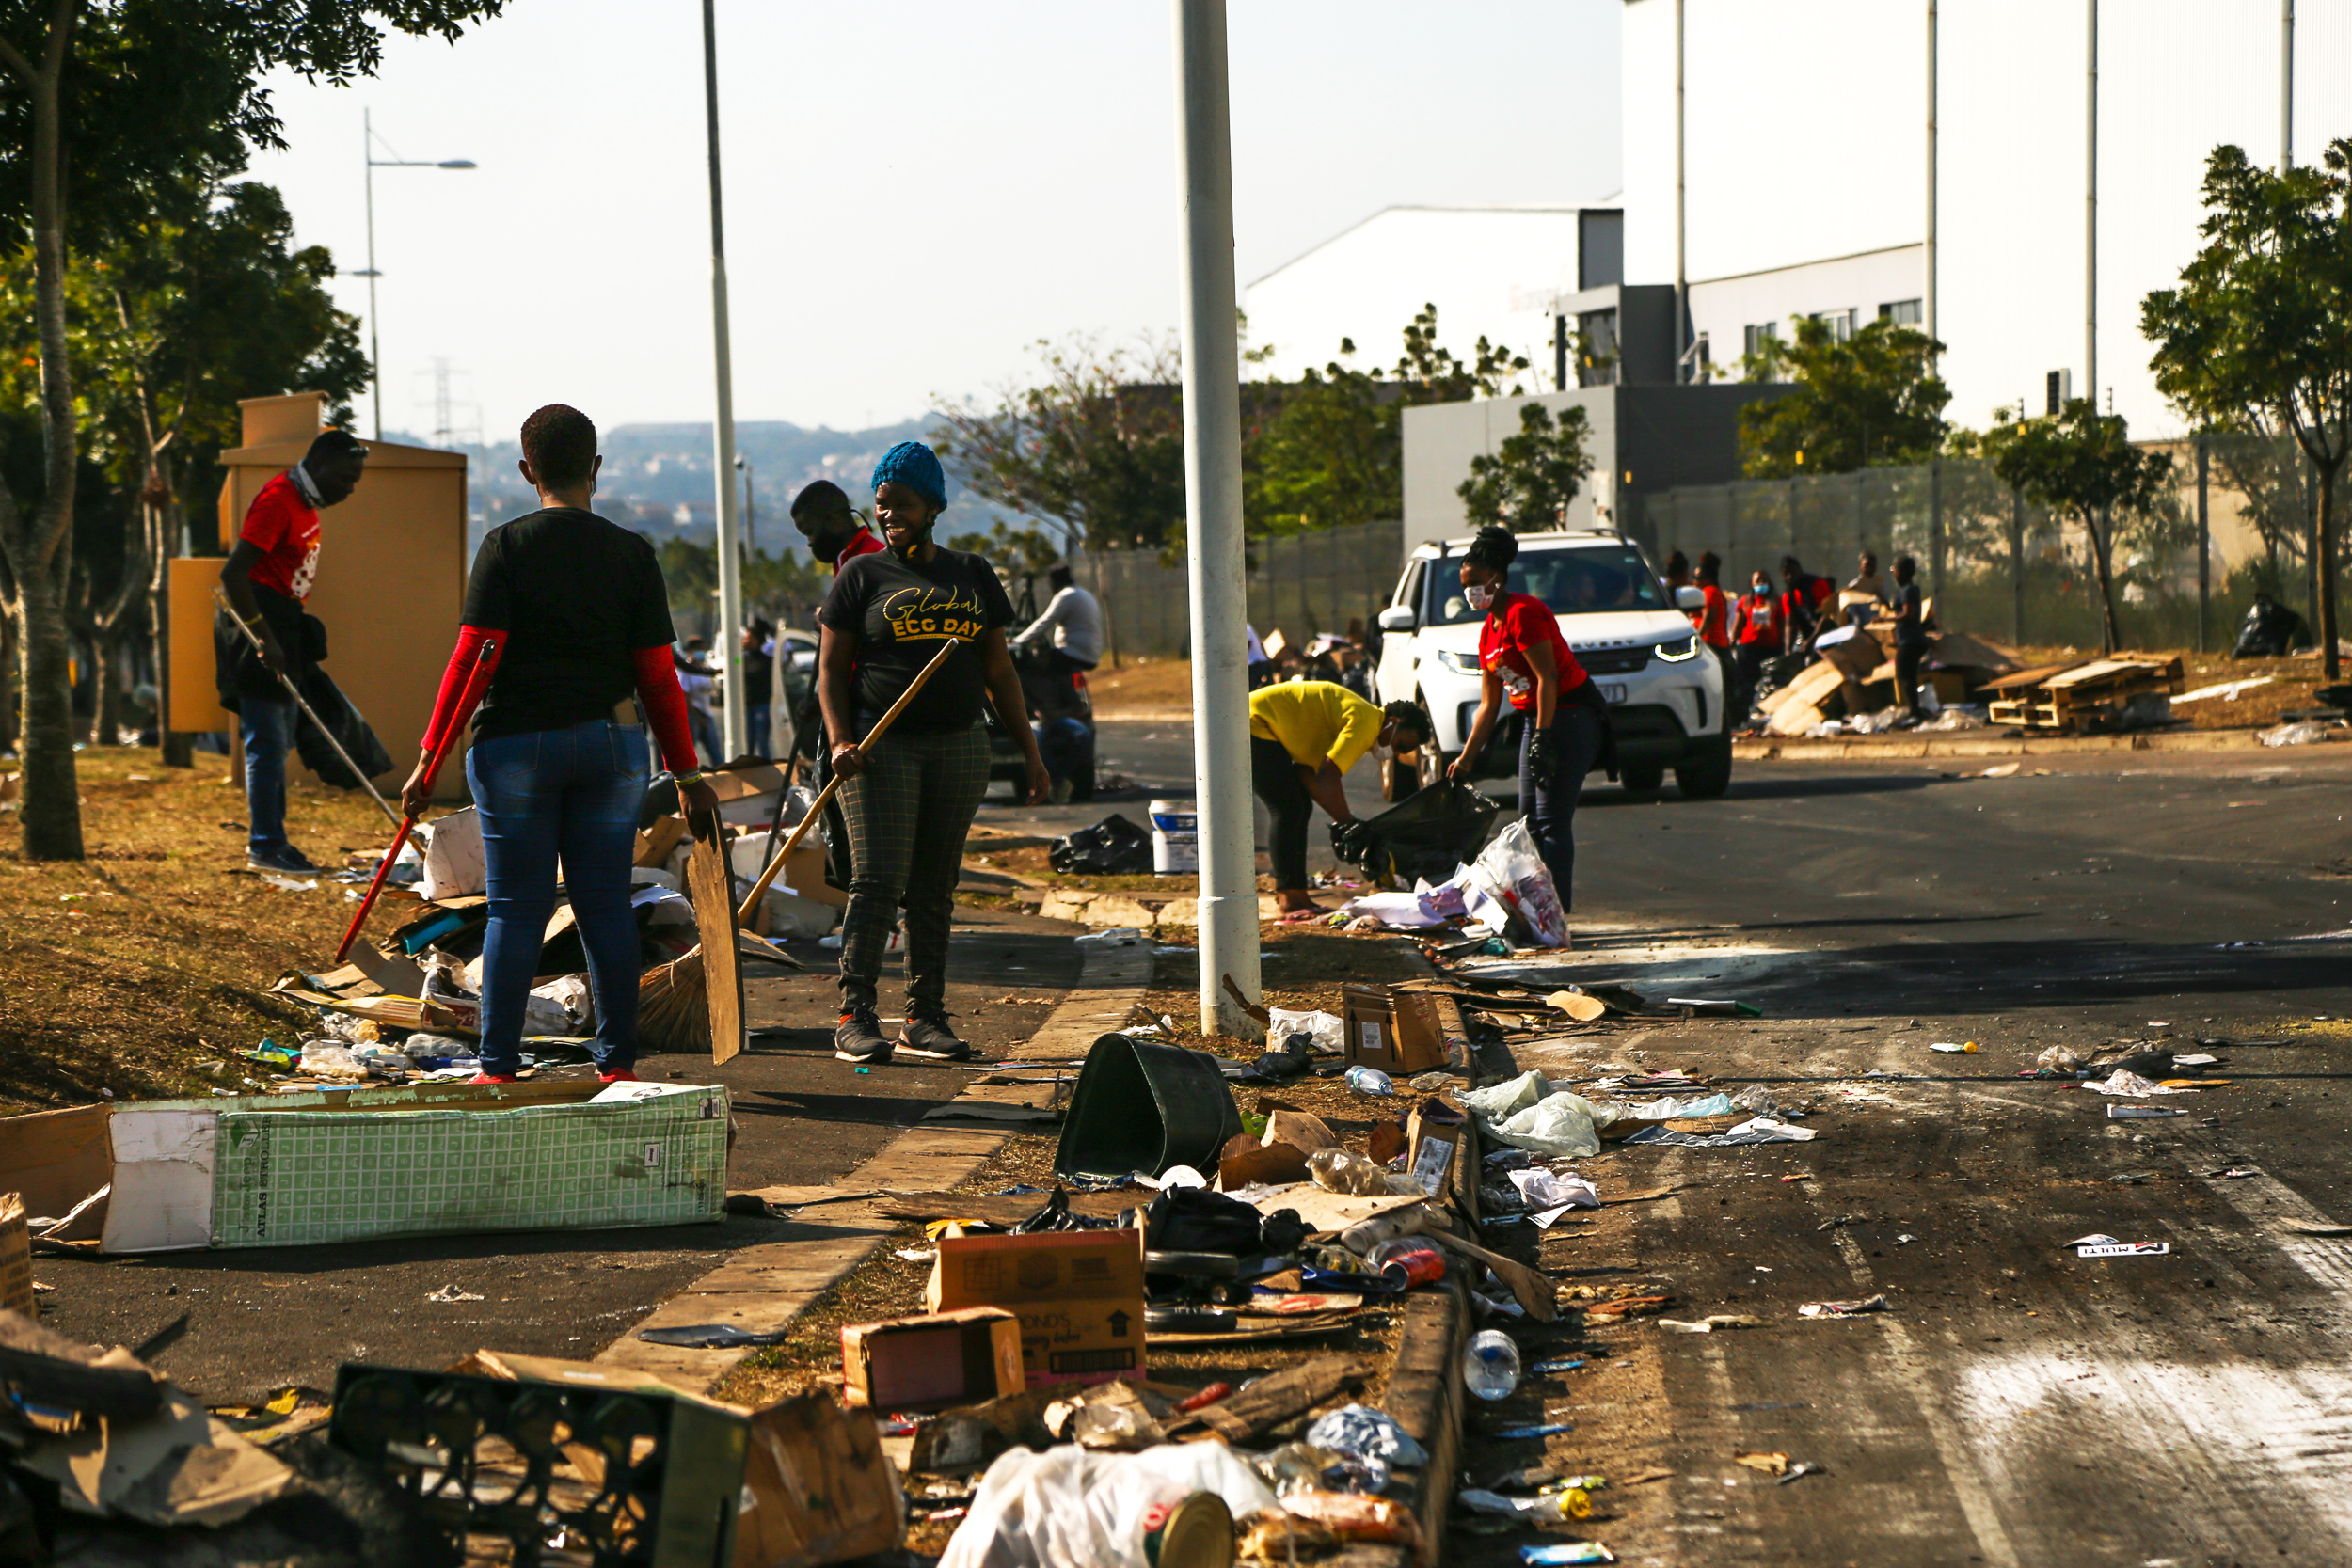 Army of volunteers remains on guard after riots and widespread looting in South Africa